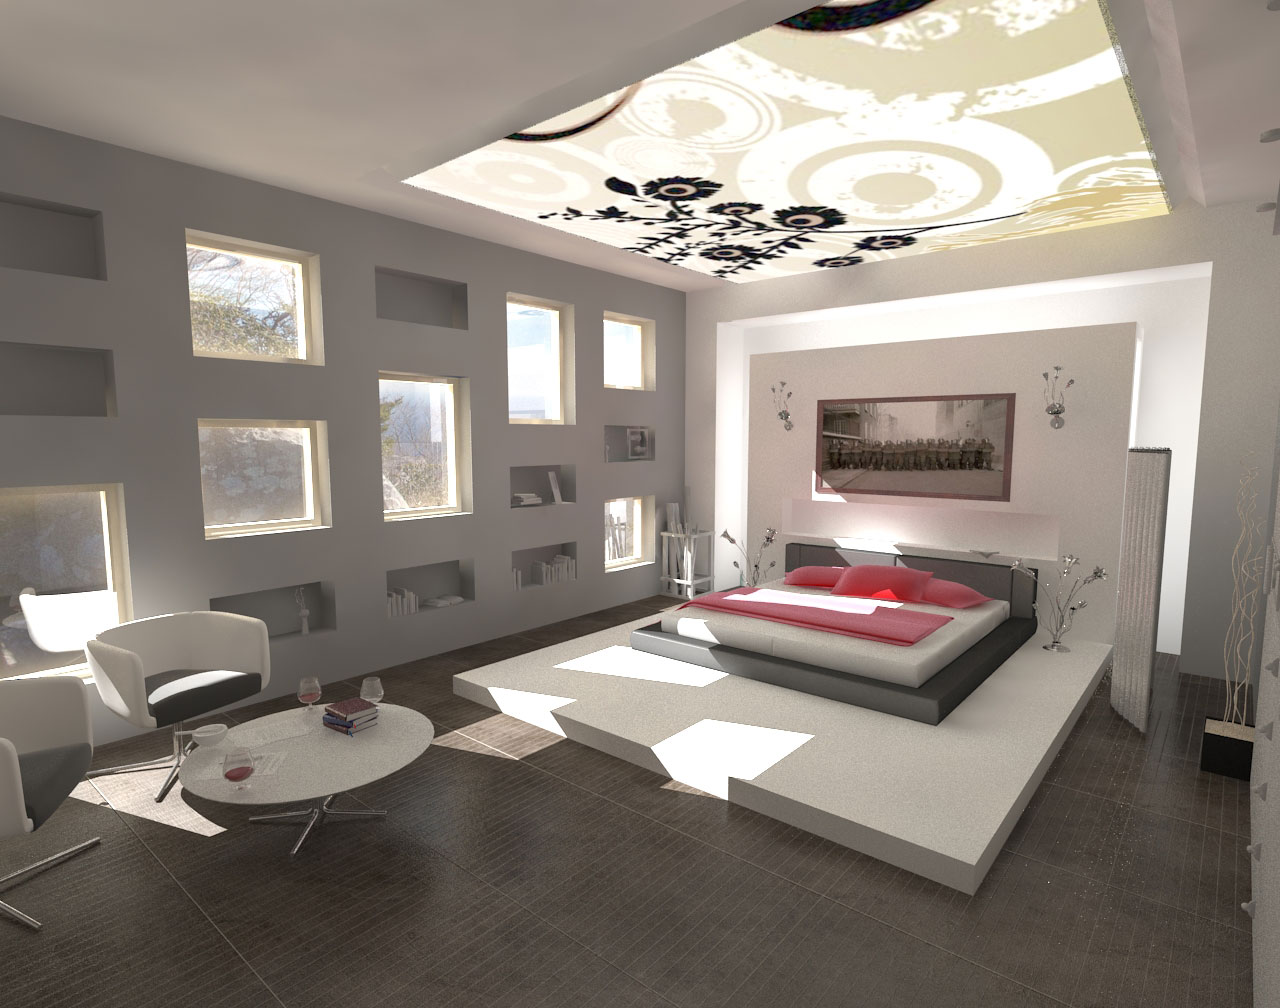 Decorations minimalist design modern bedroom interior for Modern bedroom